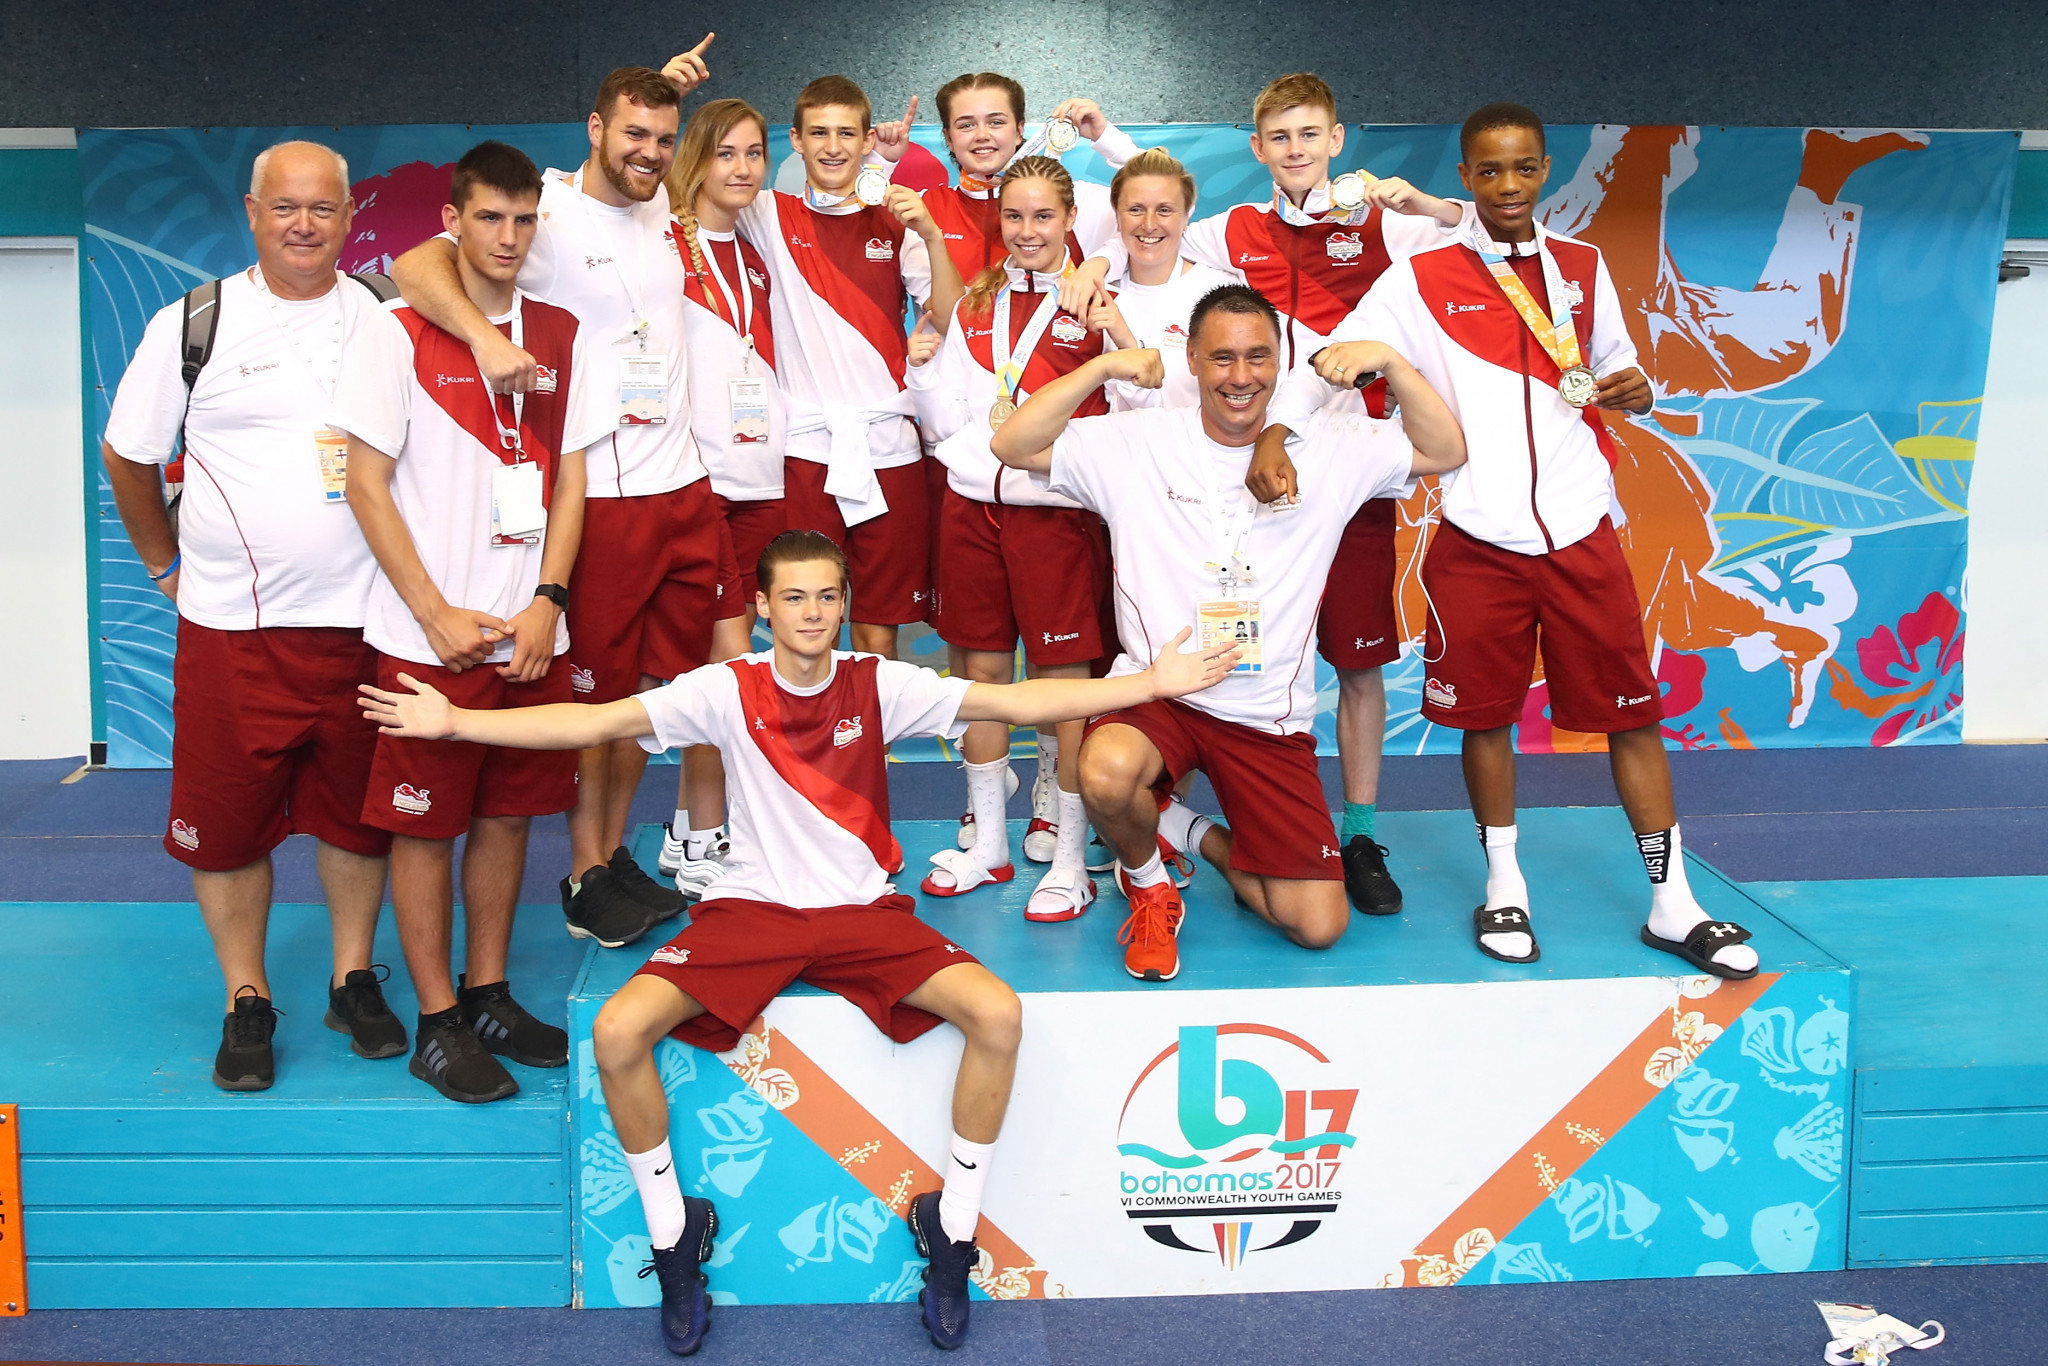 Team England finished top of the medals table at the last Commonwealth Youth Games in Bahamas in 2017 ©Getty Images